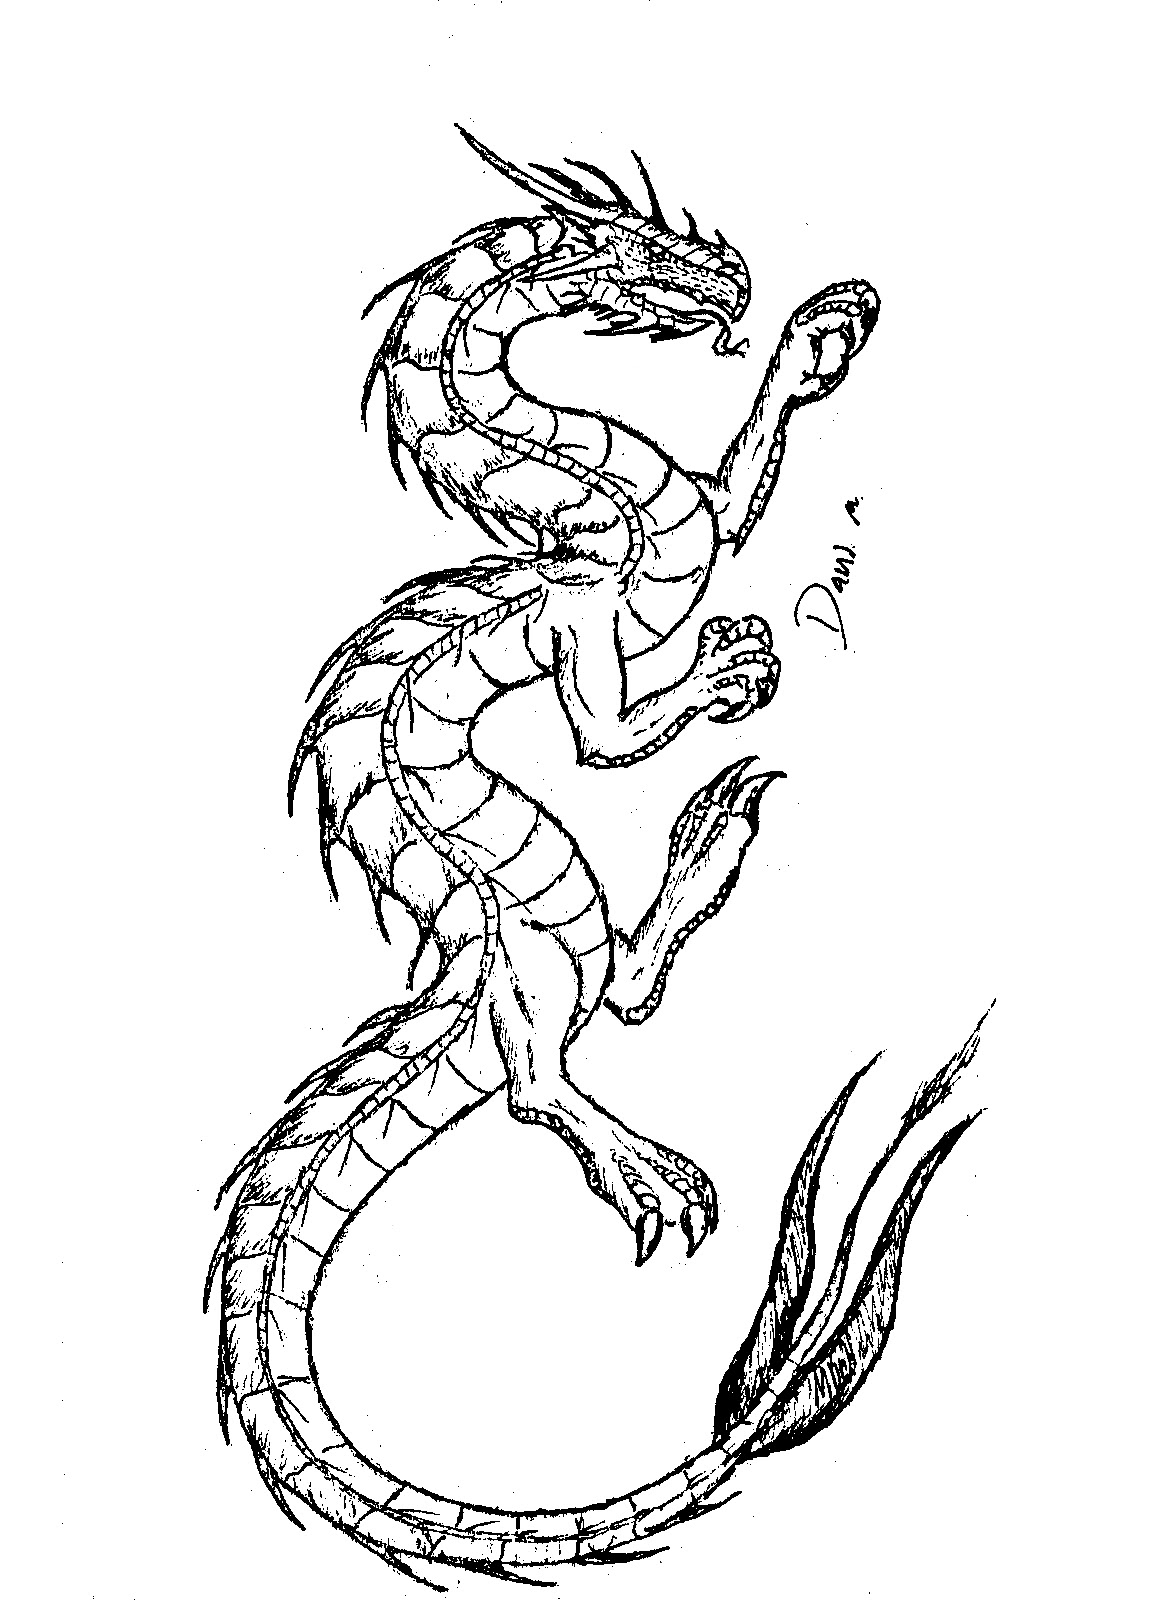 dragon pictures to color and print coloring page world tattoo dragon portrait pictures color print to dragon and